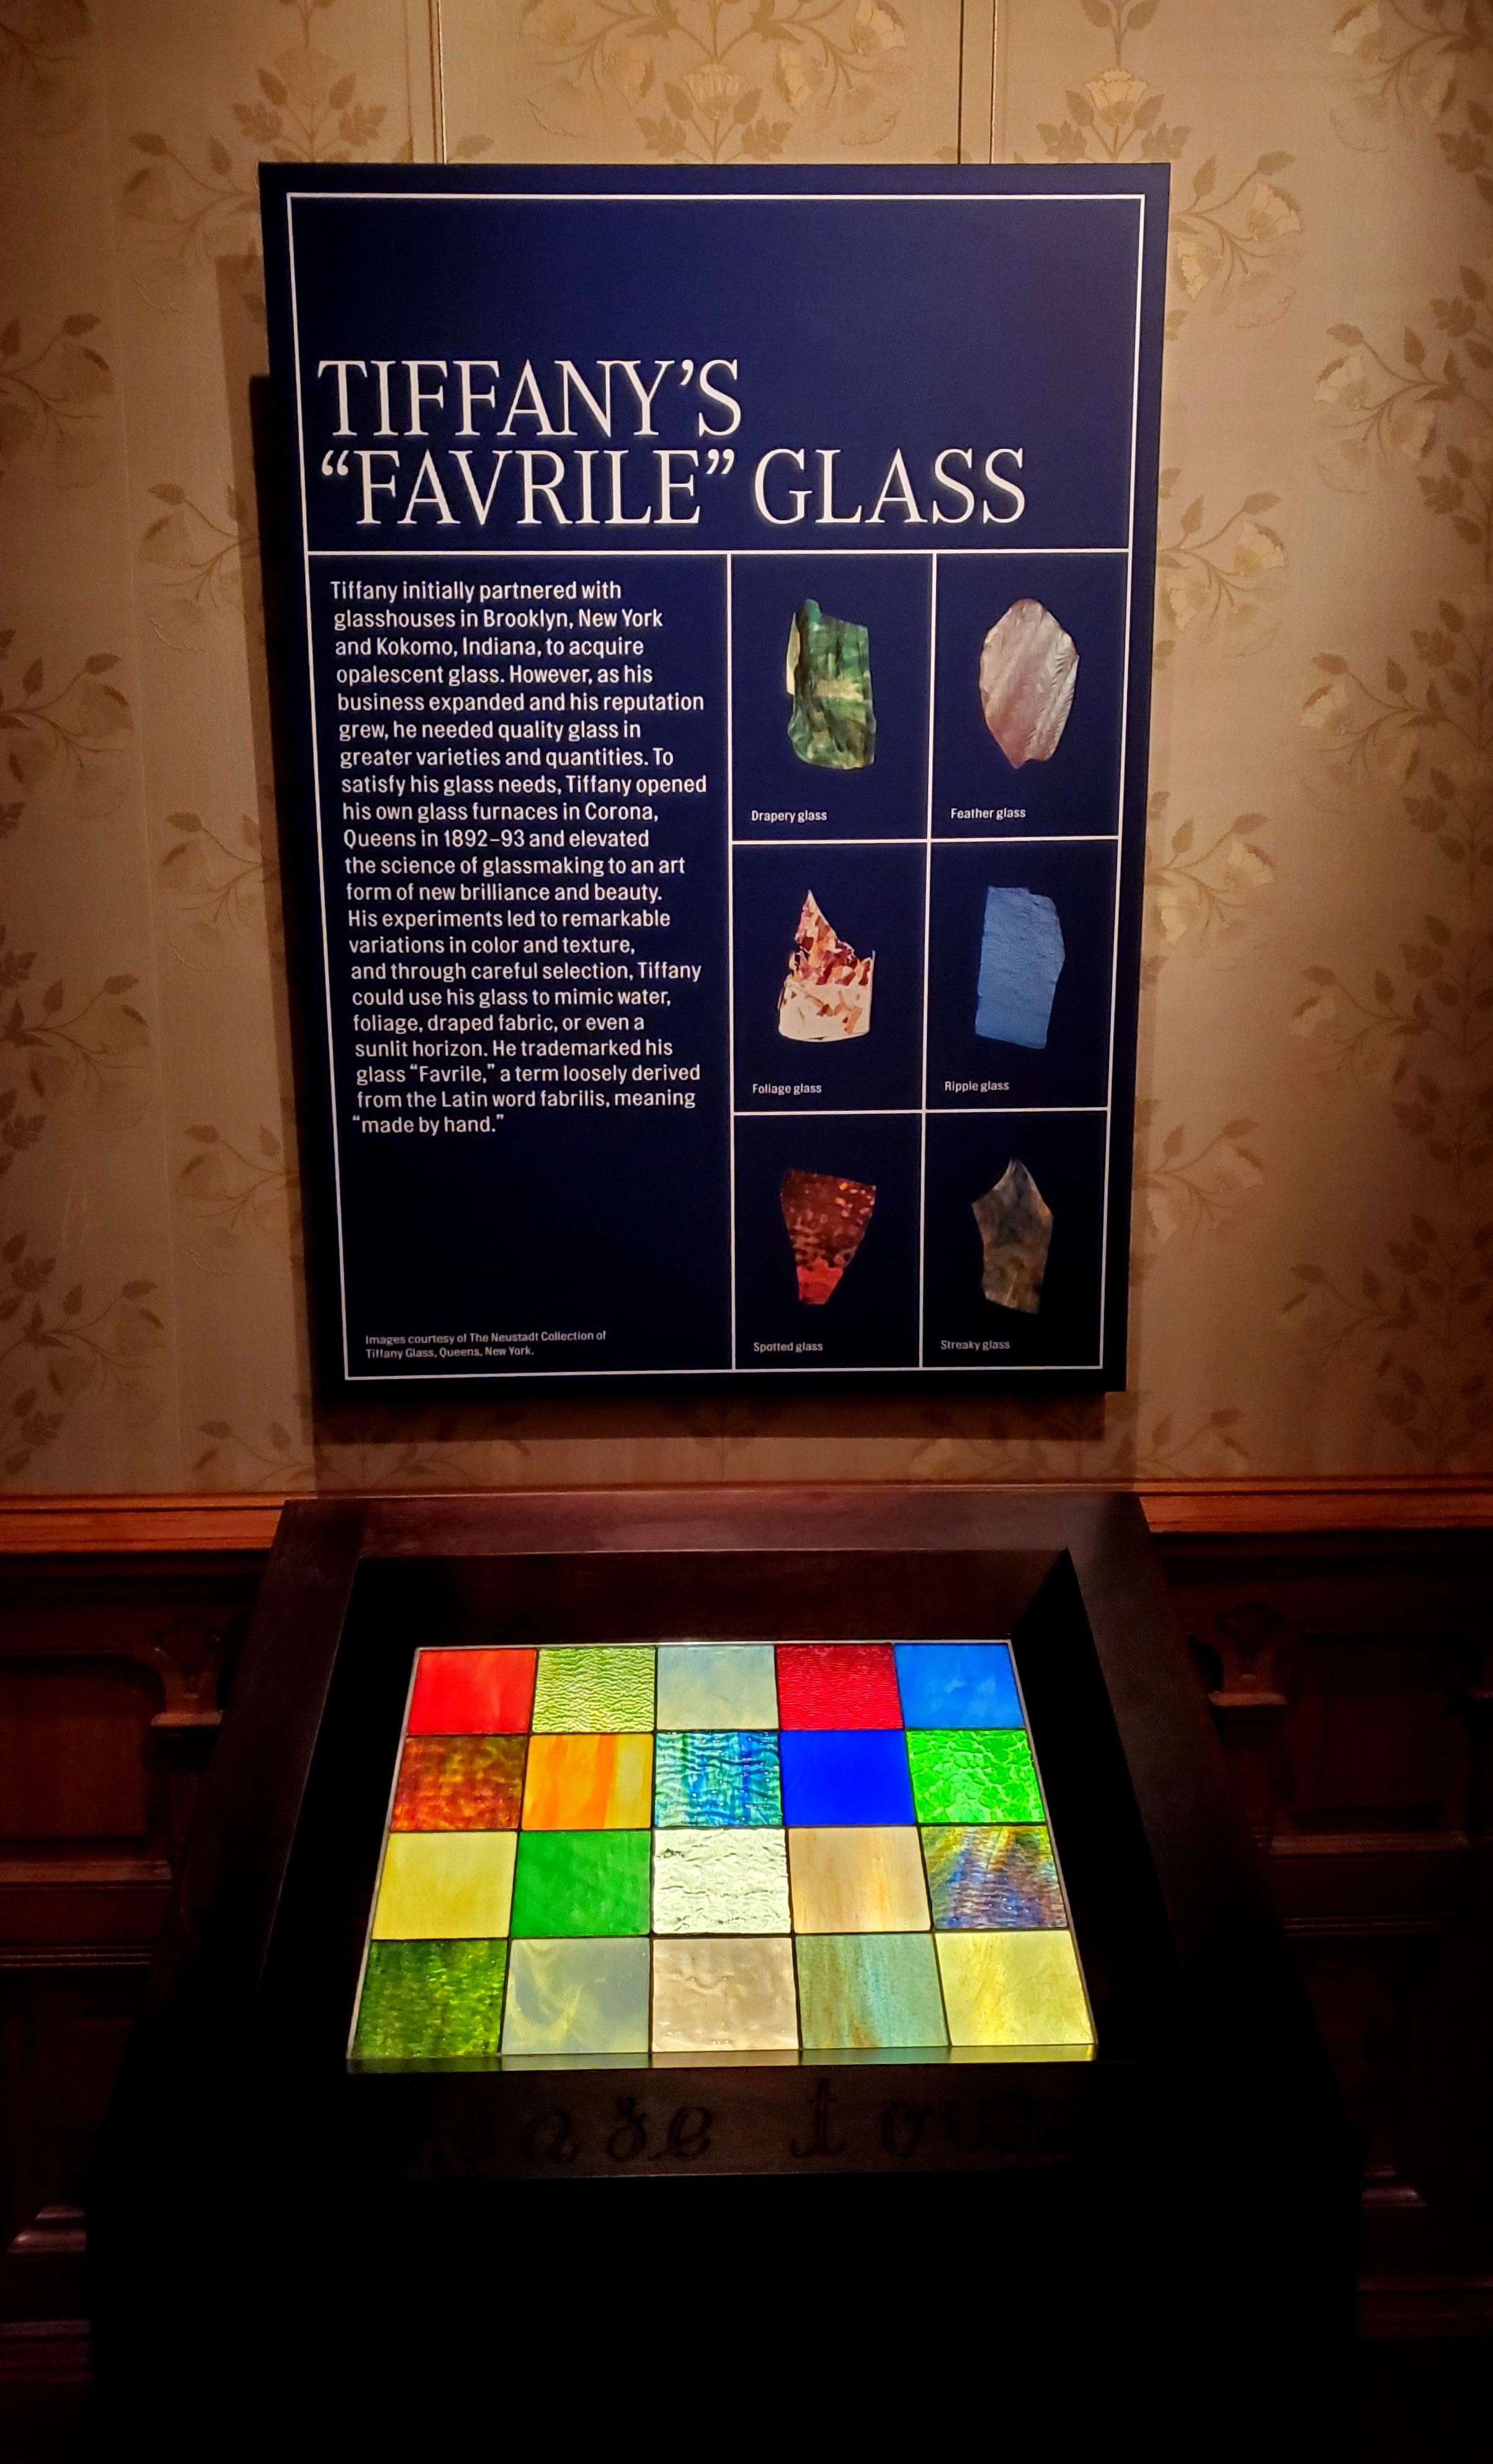 This display offers visitors to touch the different types of glass used by Tiffany